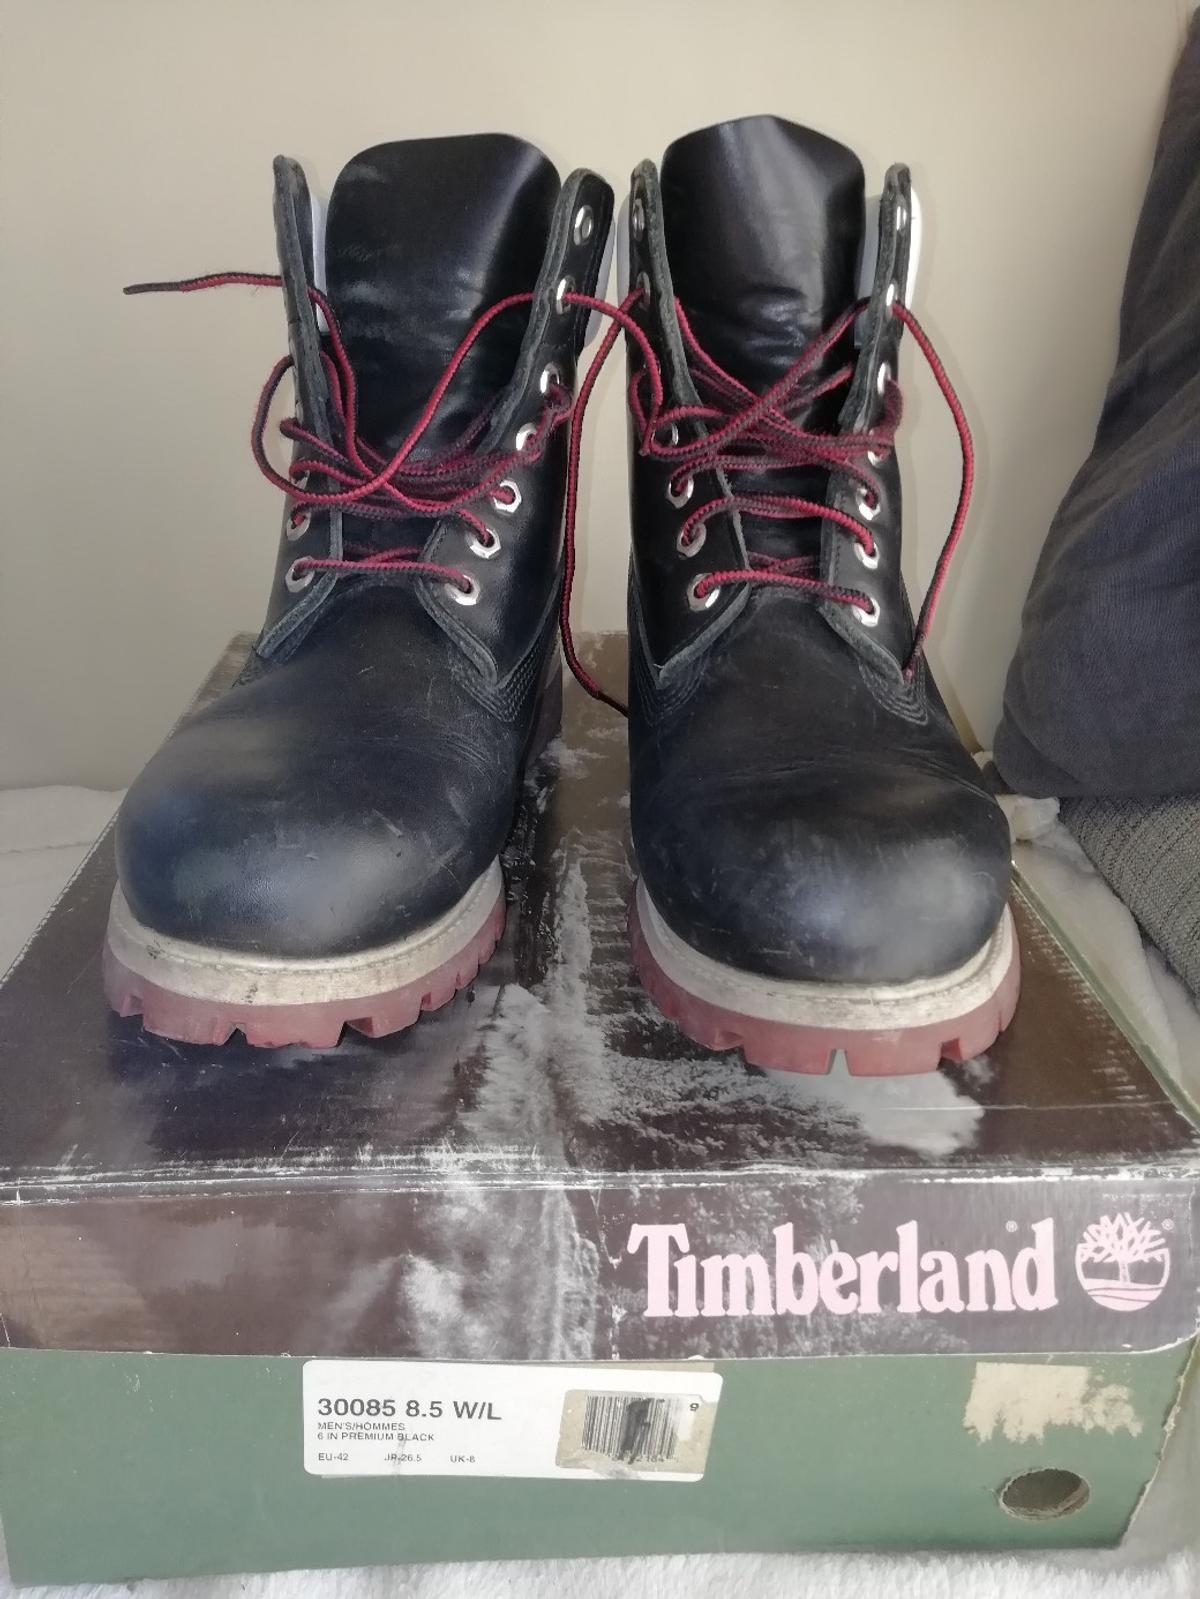 hospital erupción caliente  anfibi timberland 42 in Cumiana for €95.00 for sale | Shpock